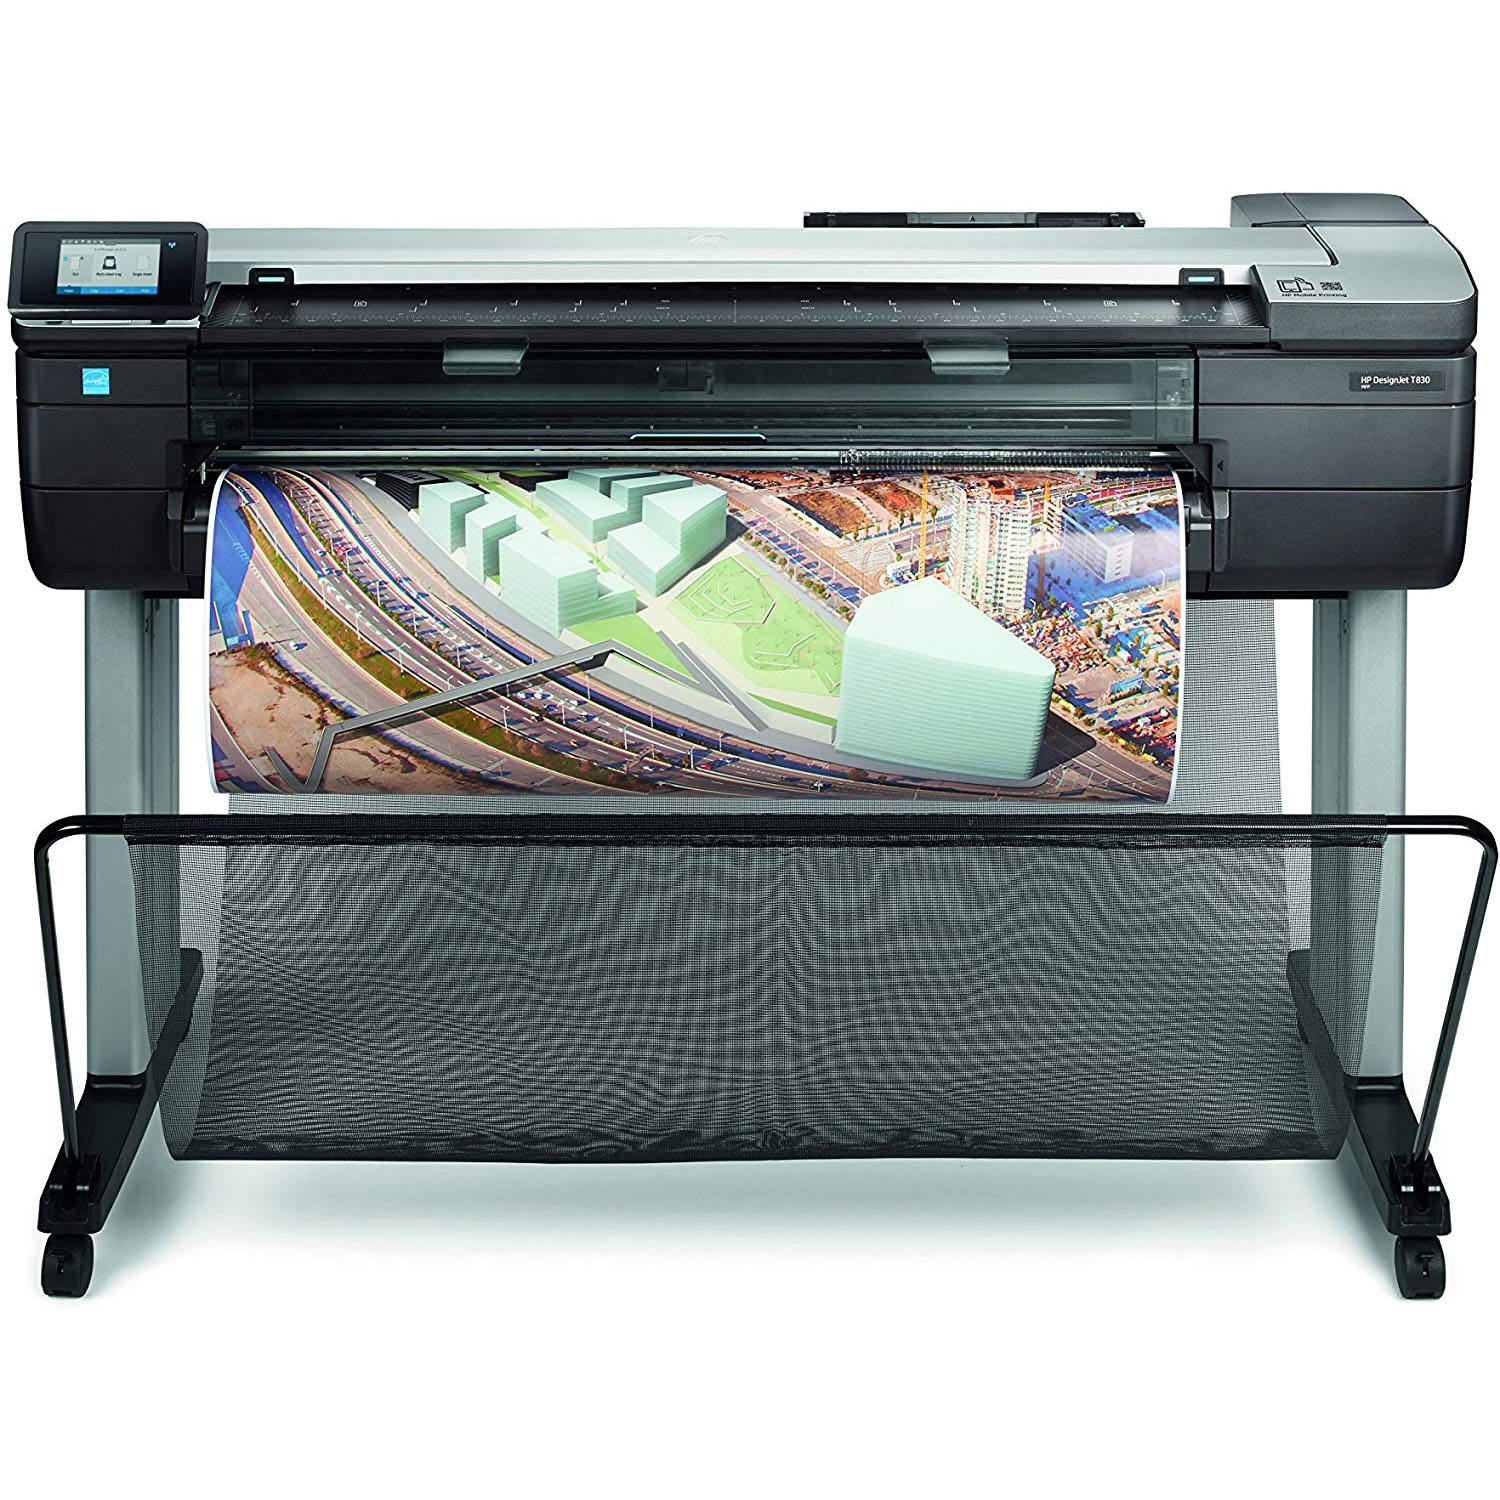 HP T830 Color DesignJet 36-inch Multifunction Printer (F9A30A)